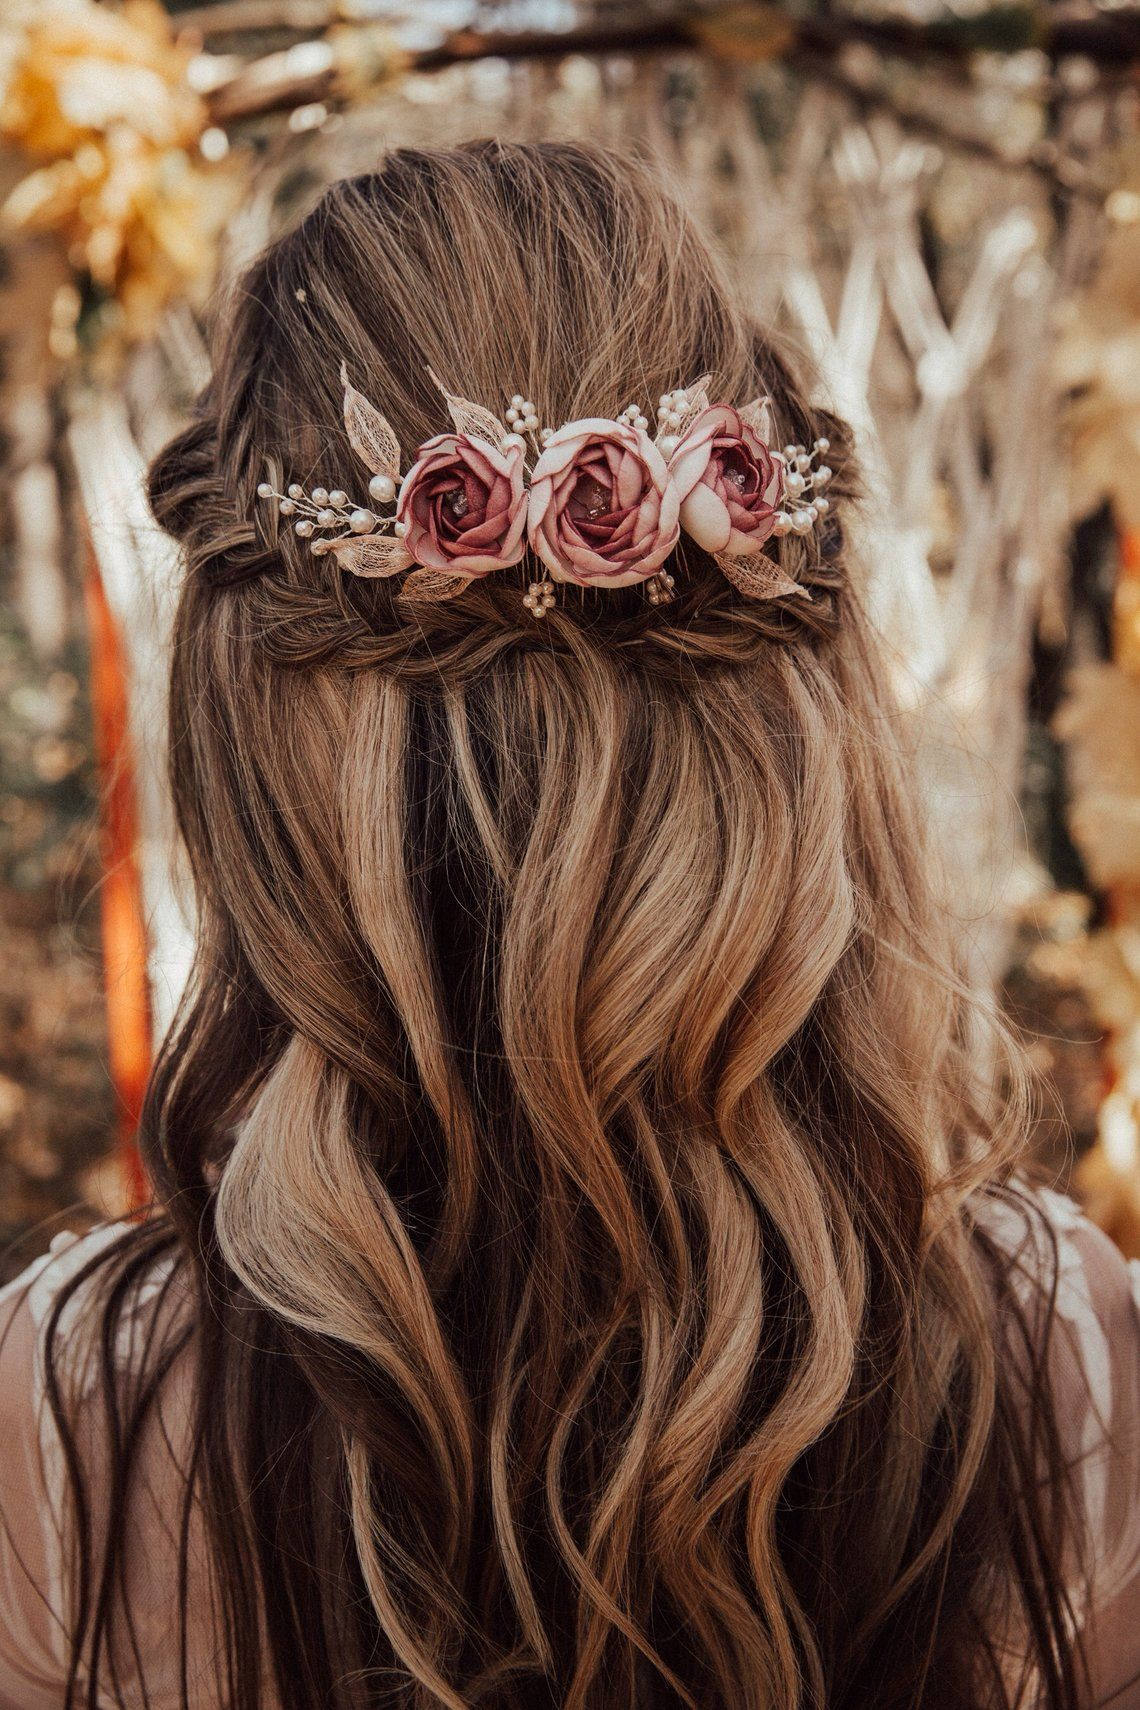 Boho bridal hair comb with handcrafted dusty pink flower and | Etsy